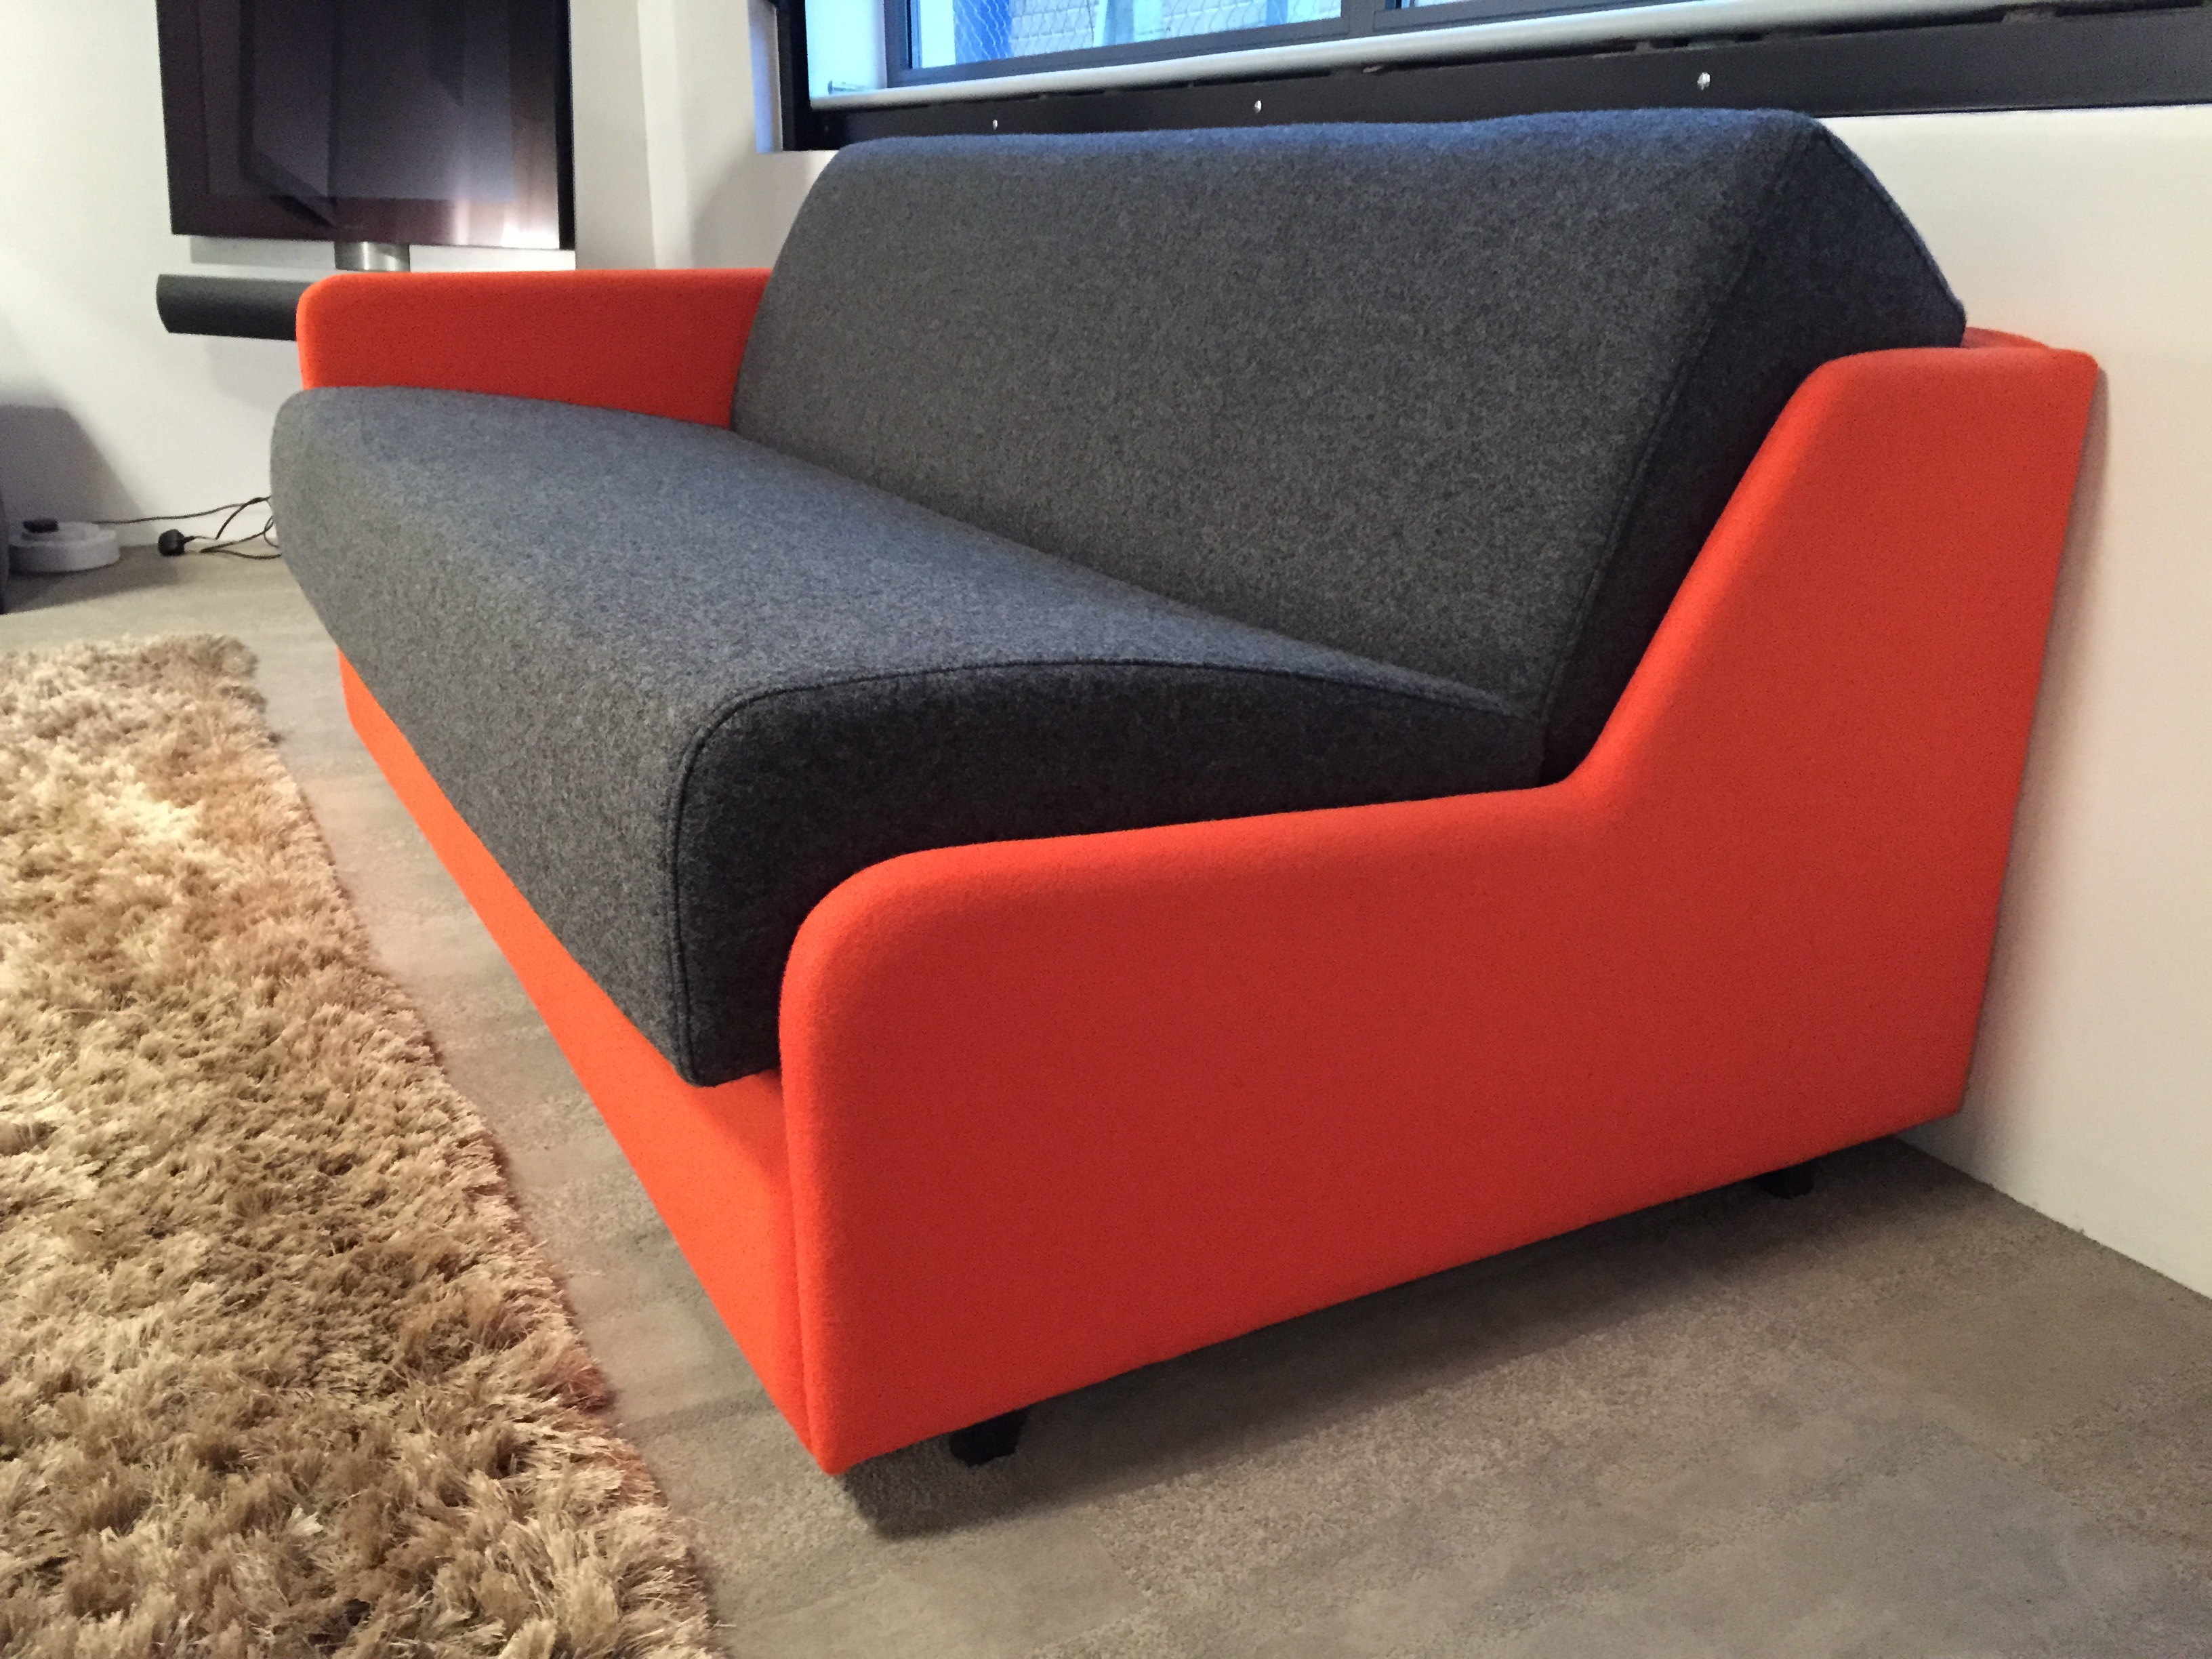 Slim Sofa Bed That Is Narrow Compact And Beautiful Furl